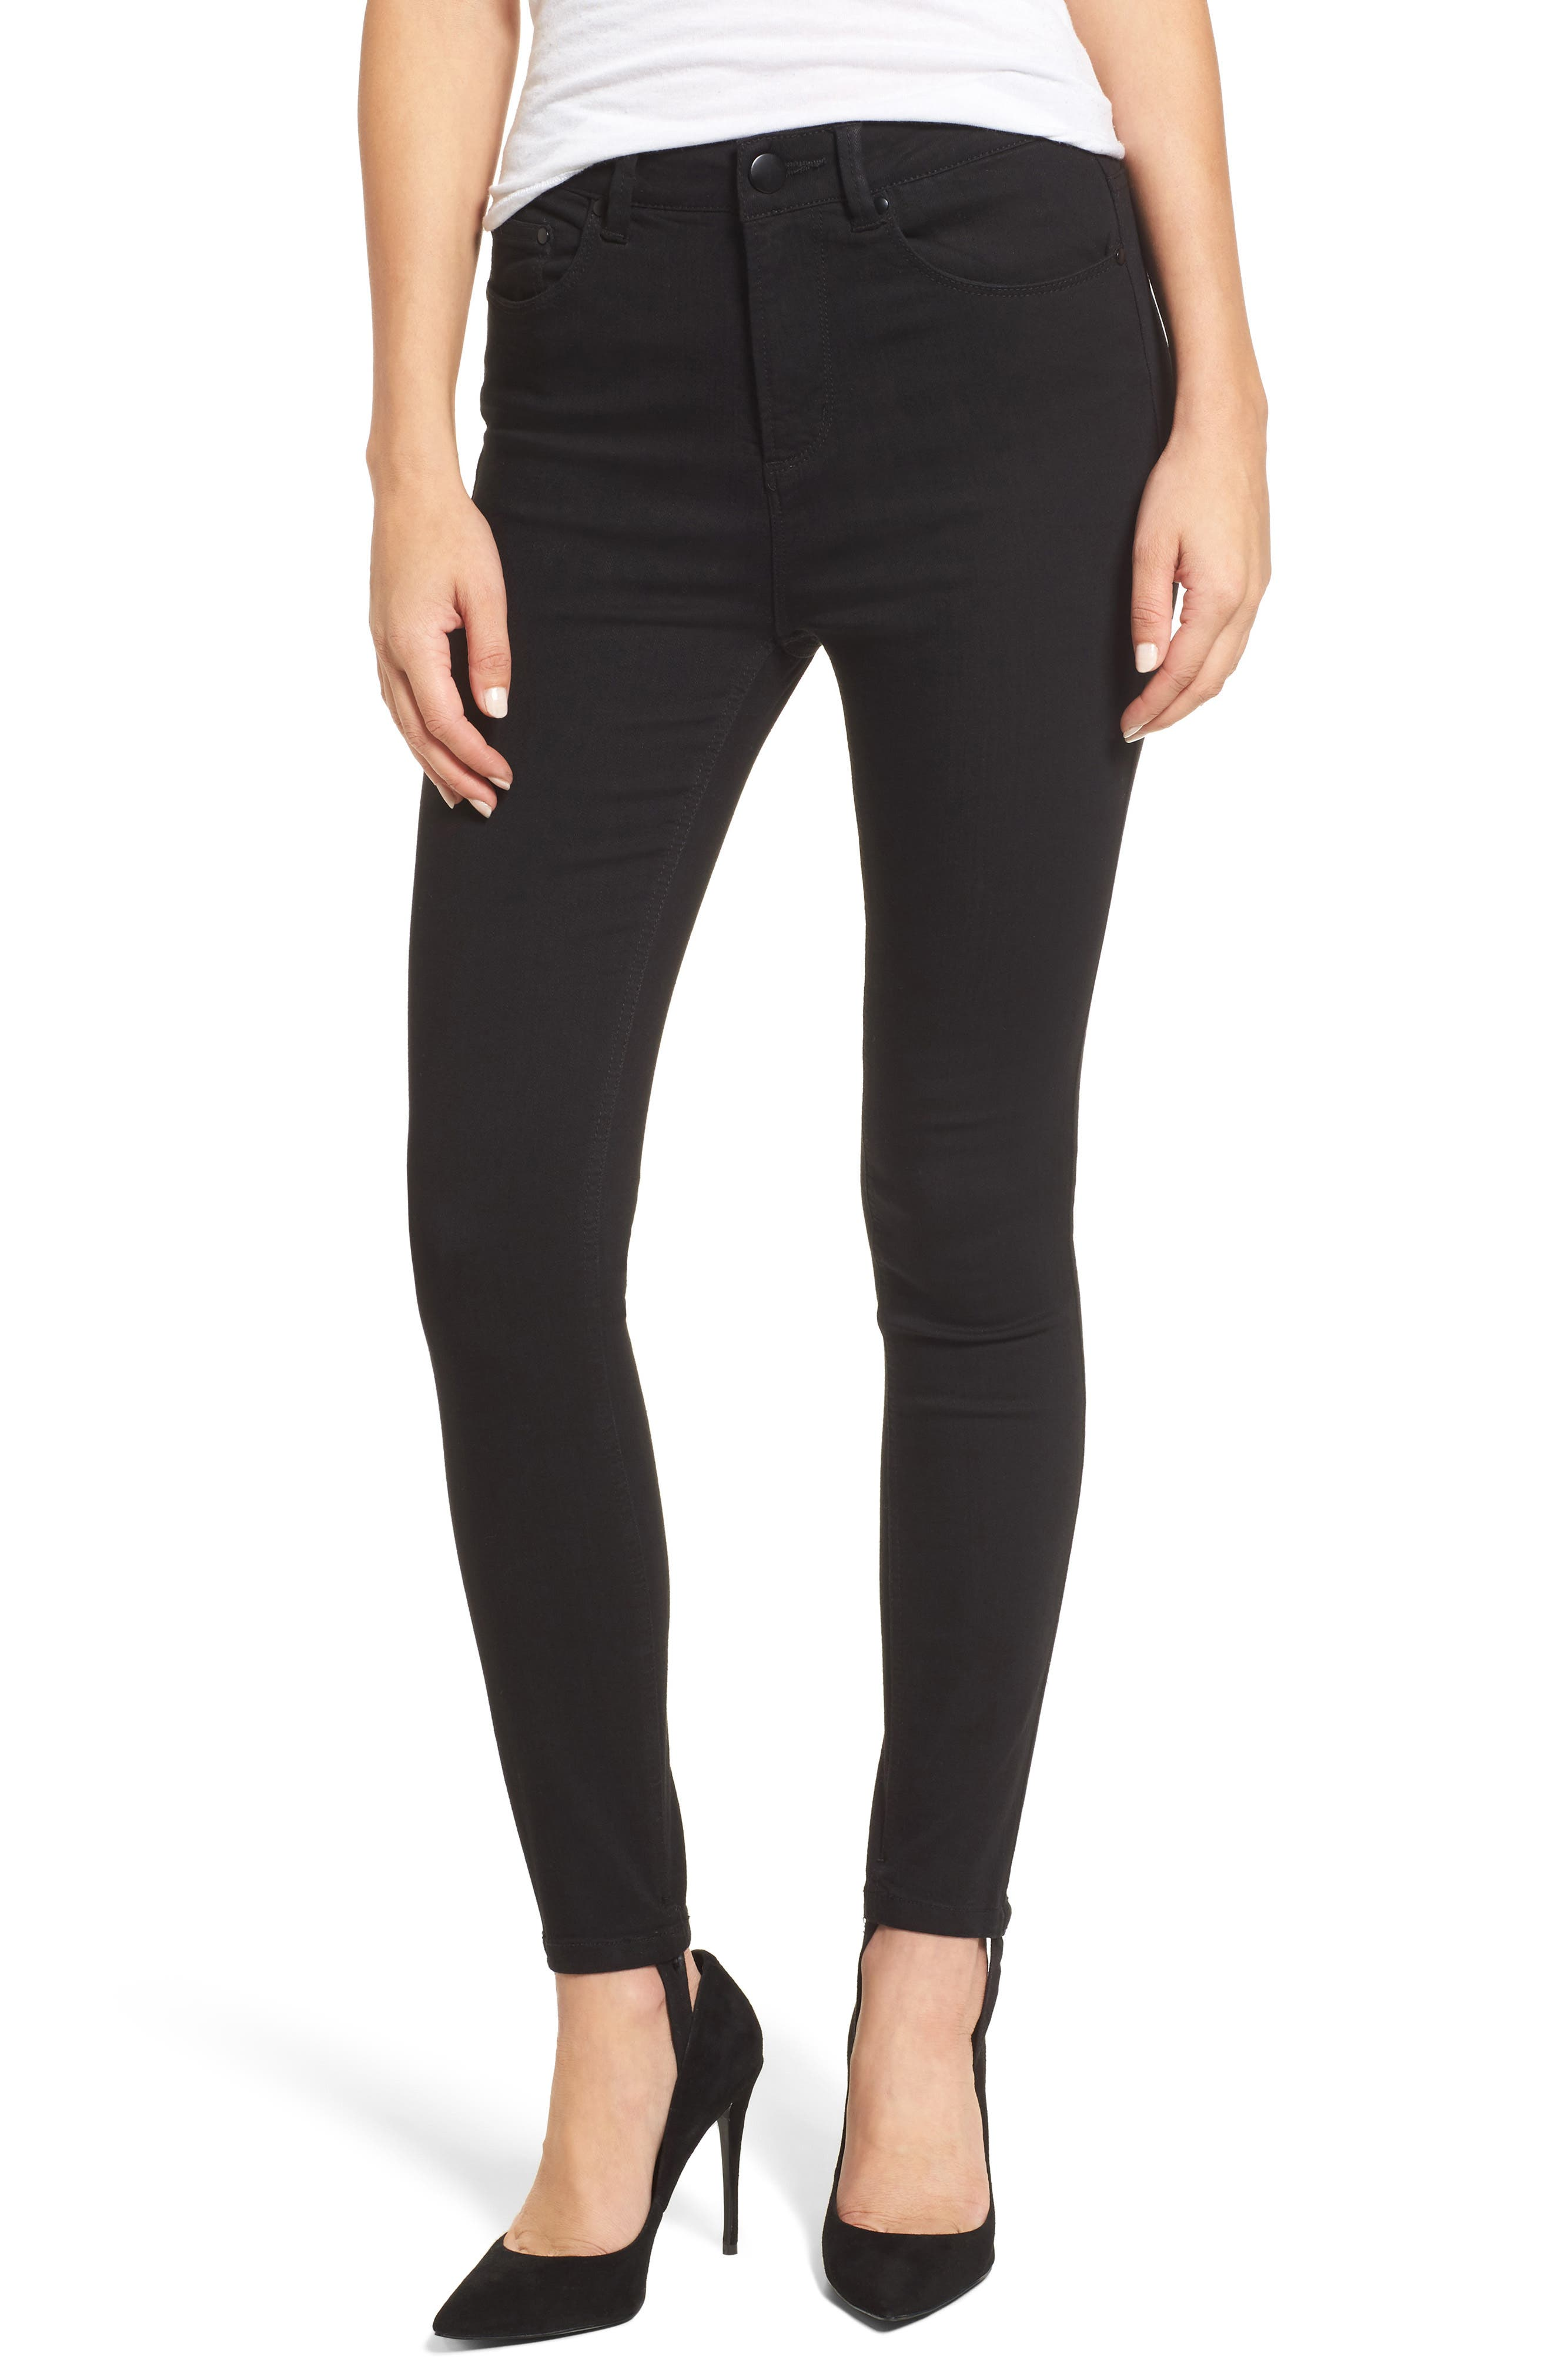 Alternate Image 1 Selected - AFRM Luma High Waist Skinny Stirrup Jeans